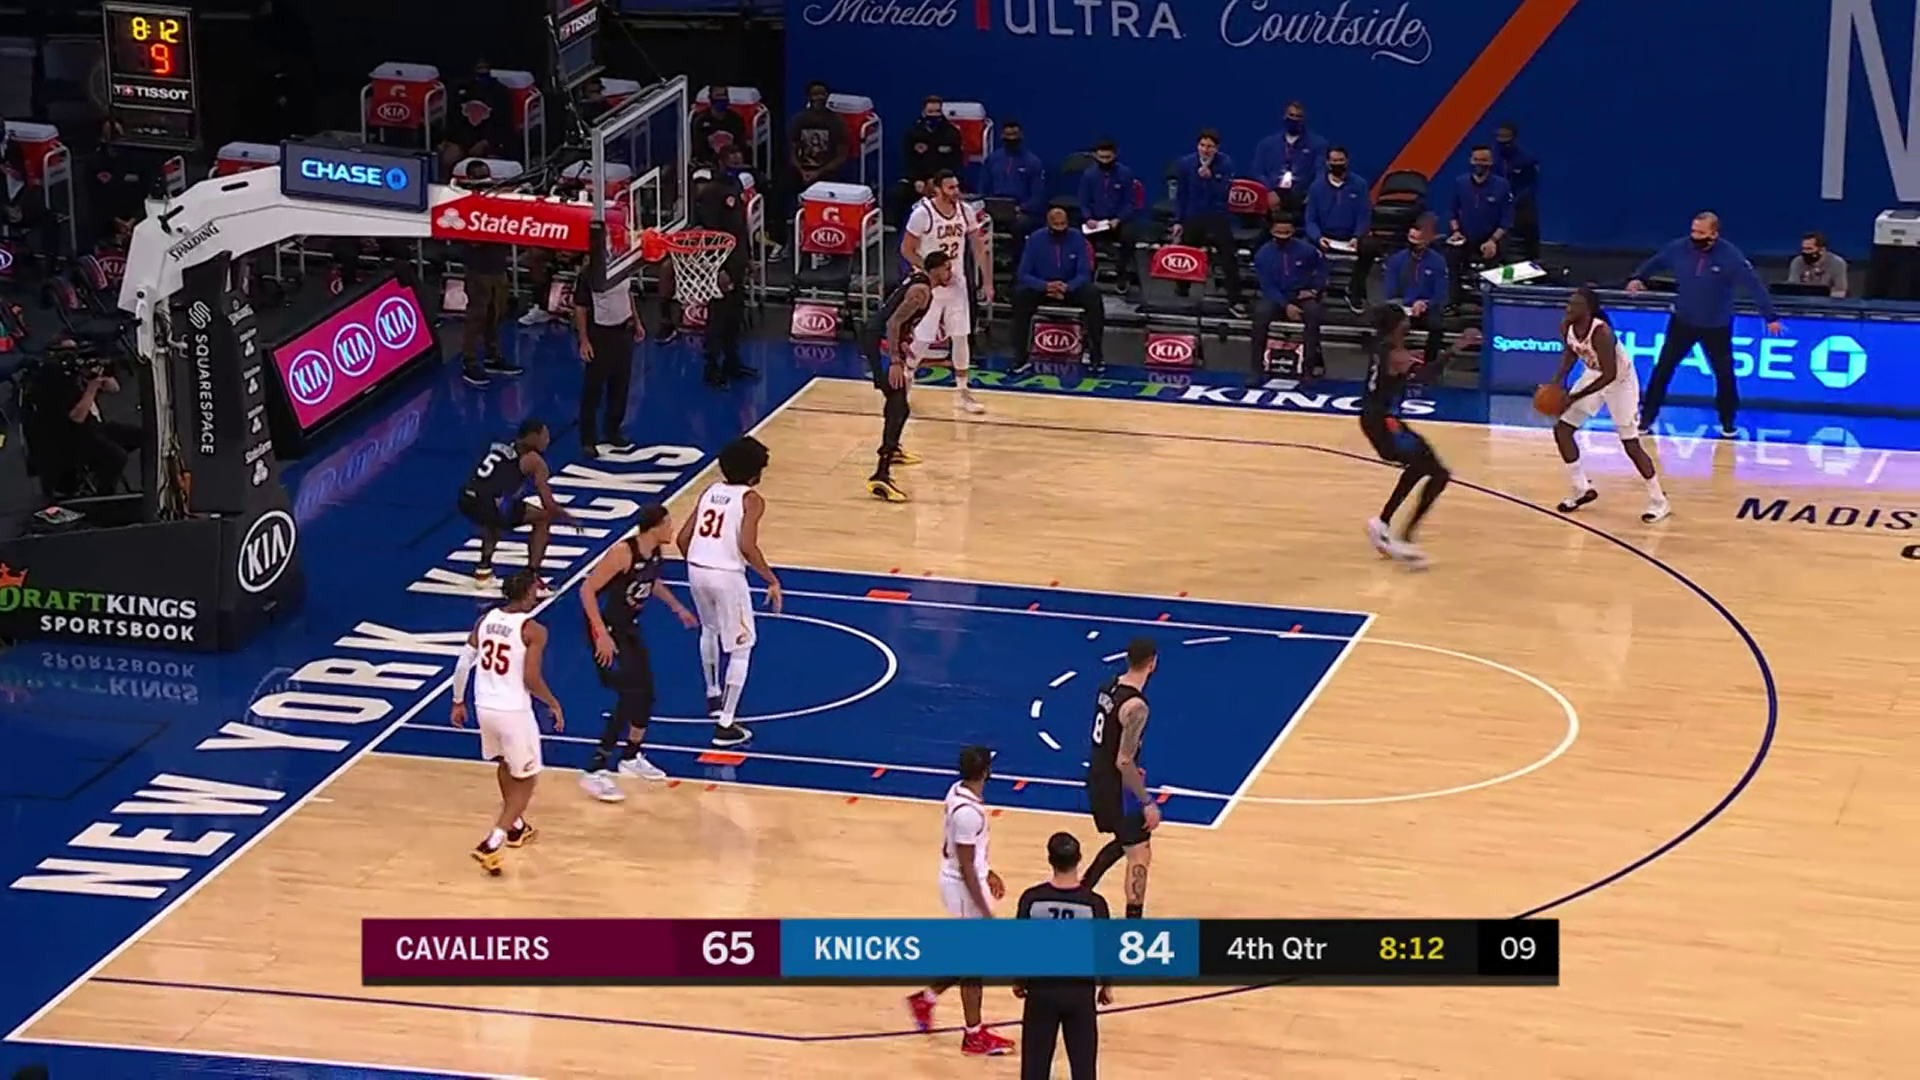 Prince Fires Pass into Allen for Dunk